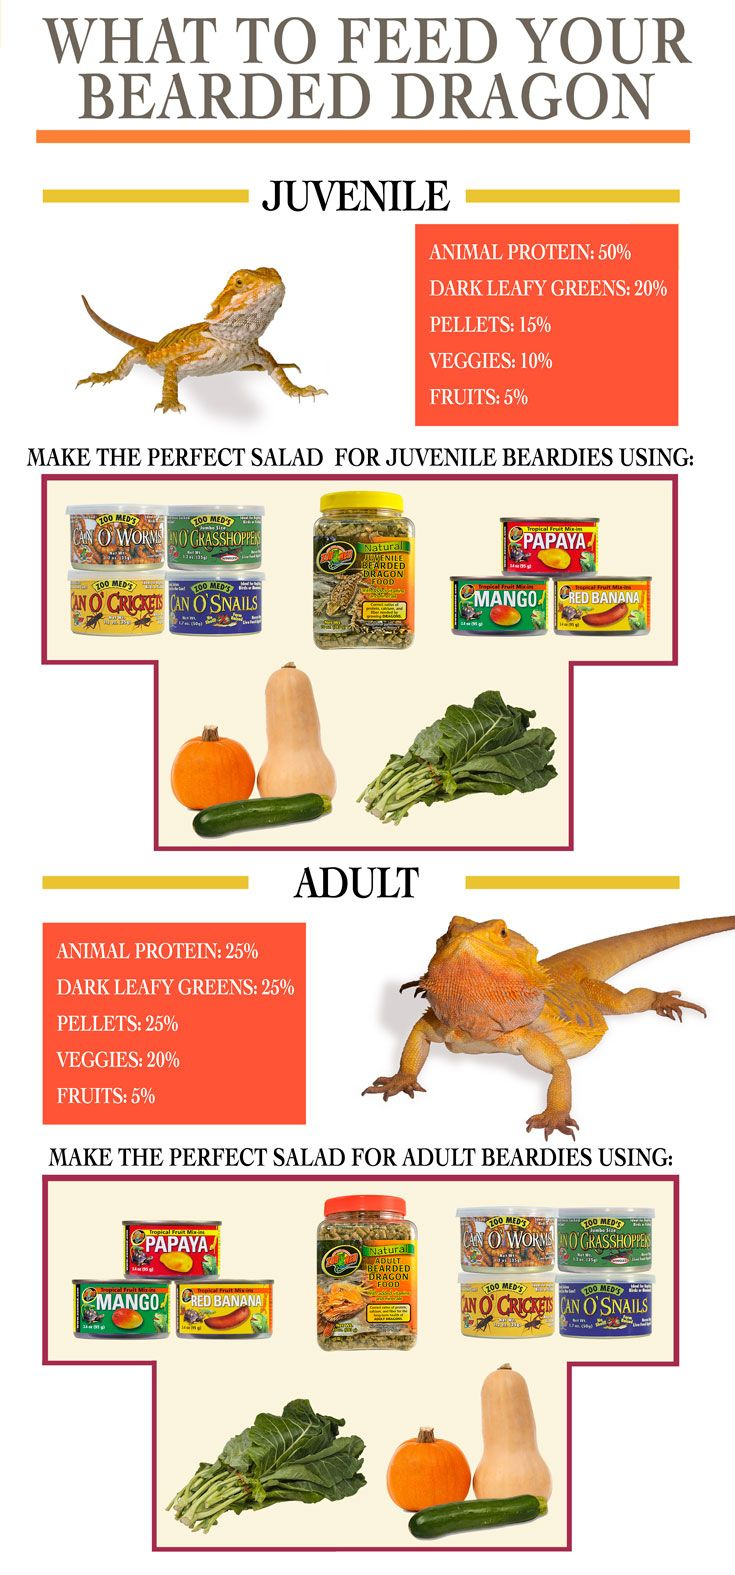 Proper Bearded Dragon Diet at different life stages. Blend a delicious medley of ingredients into a salad that meets all of your beardies needs. Combine dark leafy greens (such as collard), vegetables (such as butternut squash/pumpkin), pellets, Can O' Insects cooked in the can for maximum freshness, and Tropical fruit mix-ins. Don't forget to add Repti Calcium/ReptiVite to keep your pet healthy!